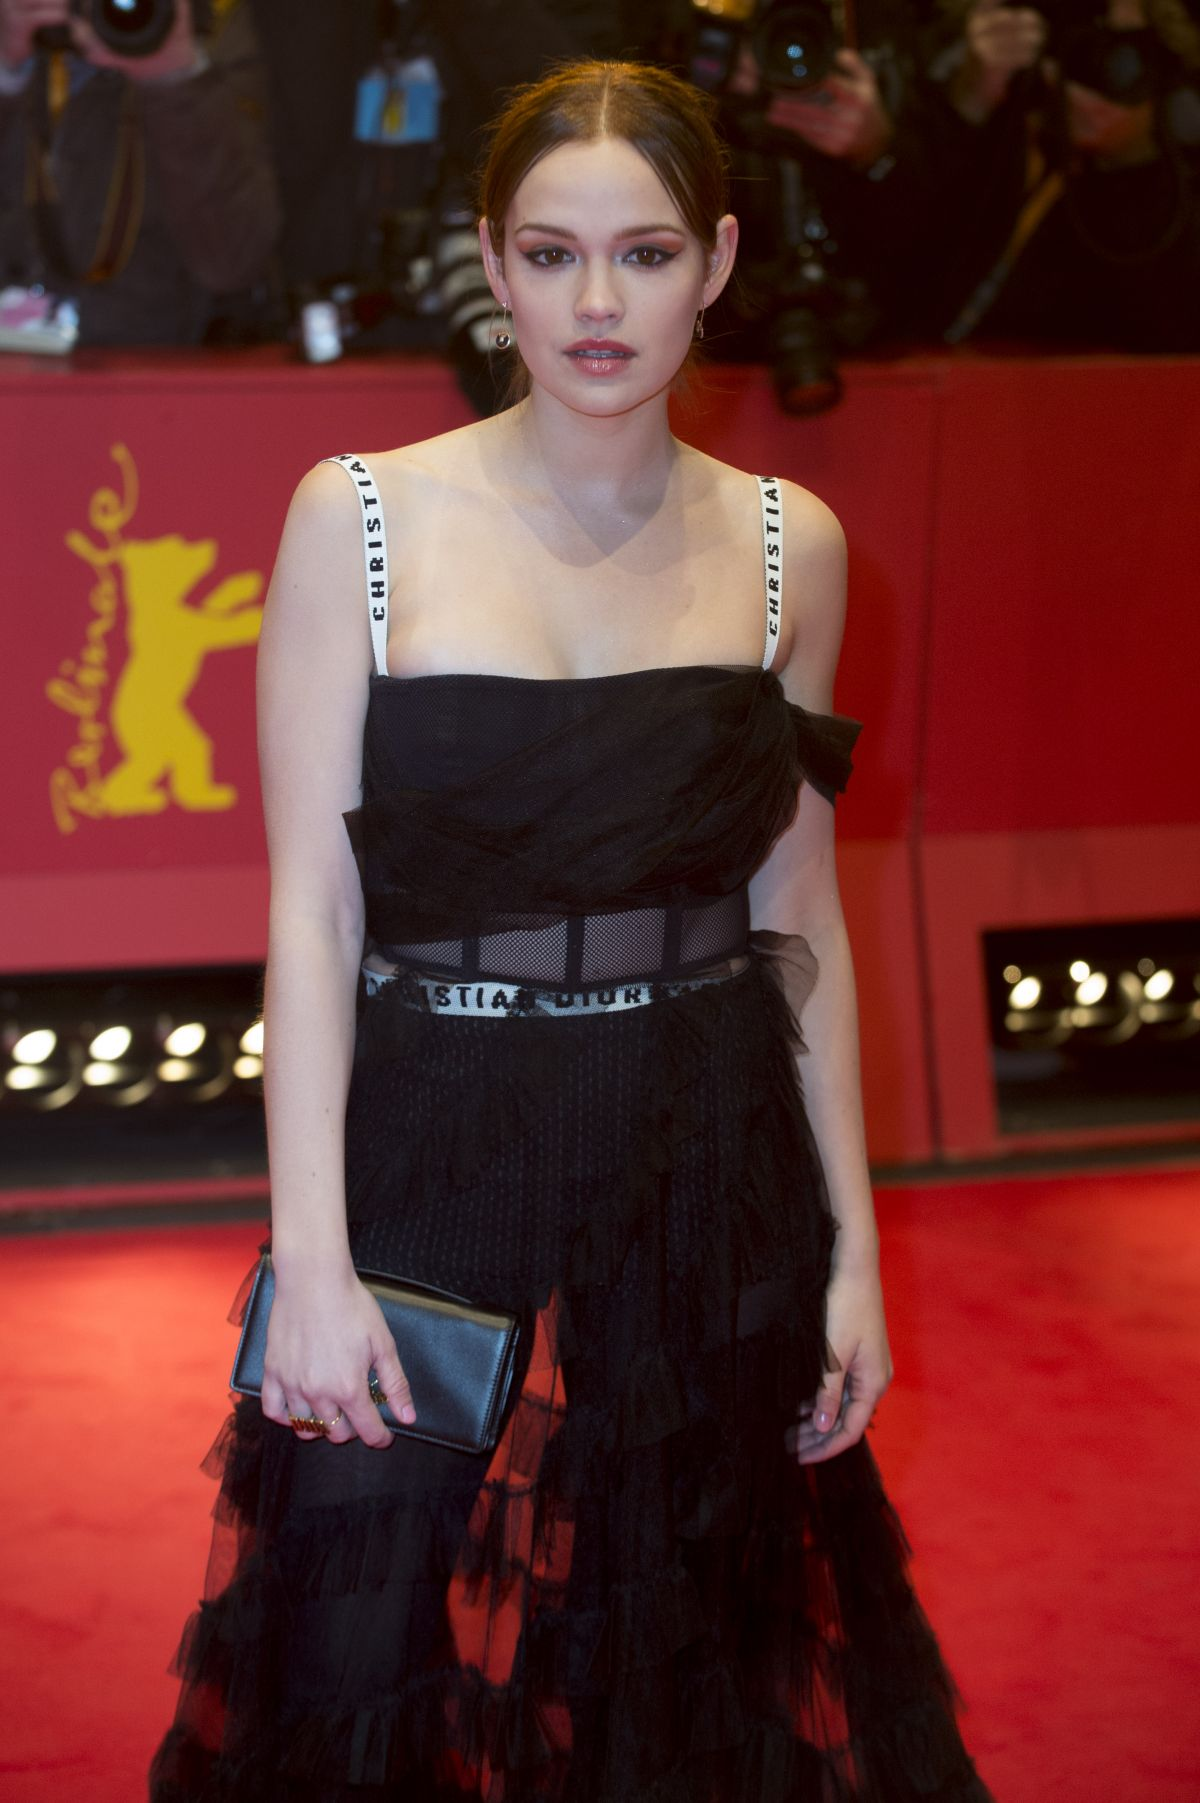 EMILIA SCHUELE at 67th Berlinale International Film Festival 02/09/2017